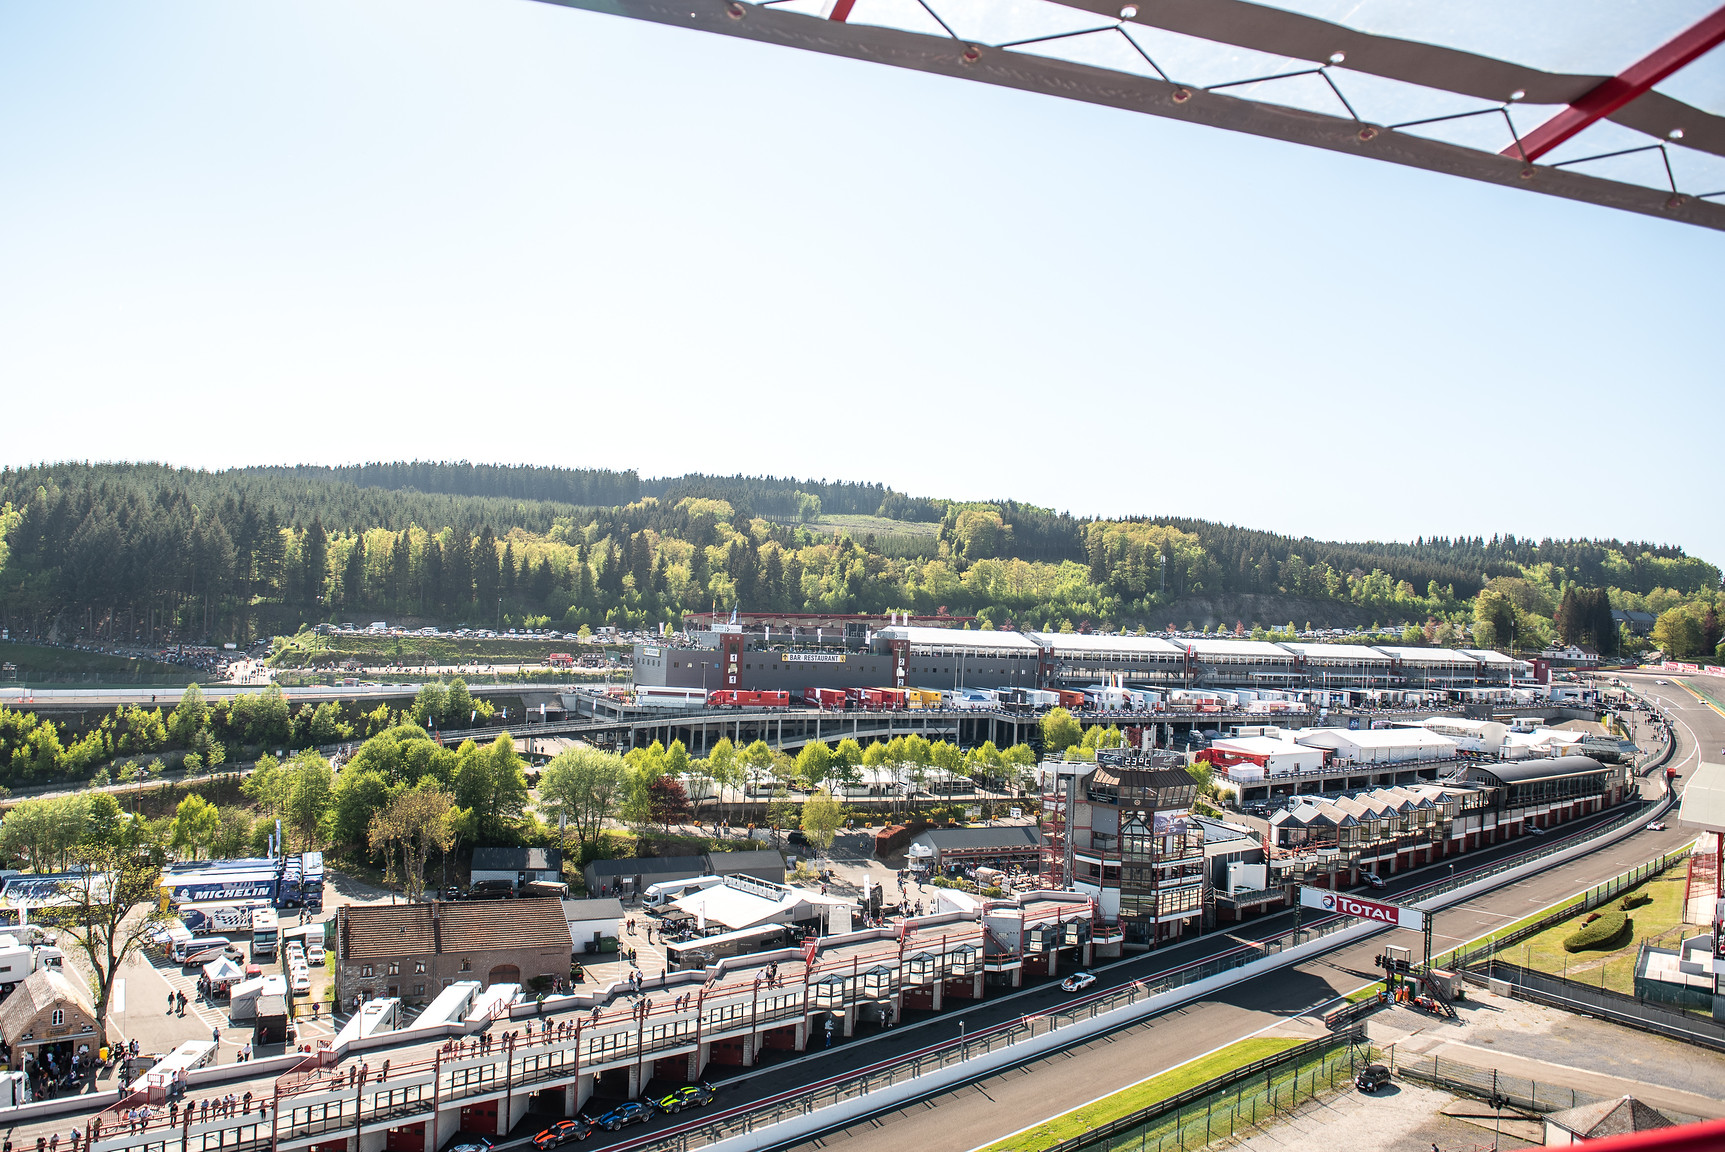 WEC renews with Circuit de Spa Francorchamps for 4 years